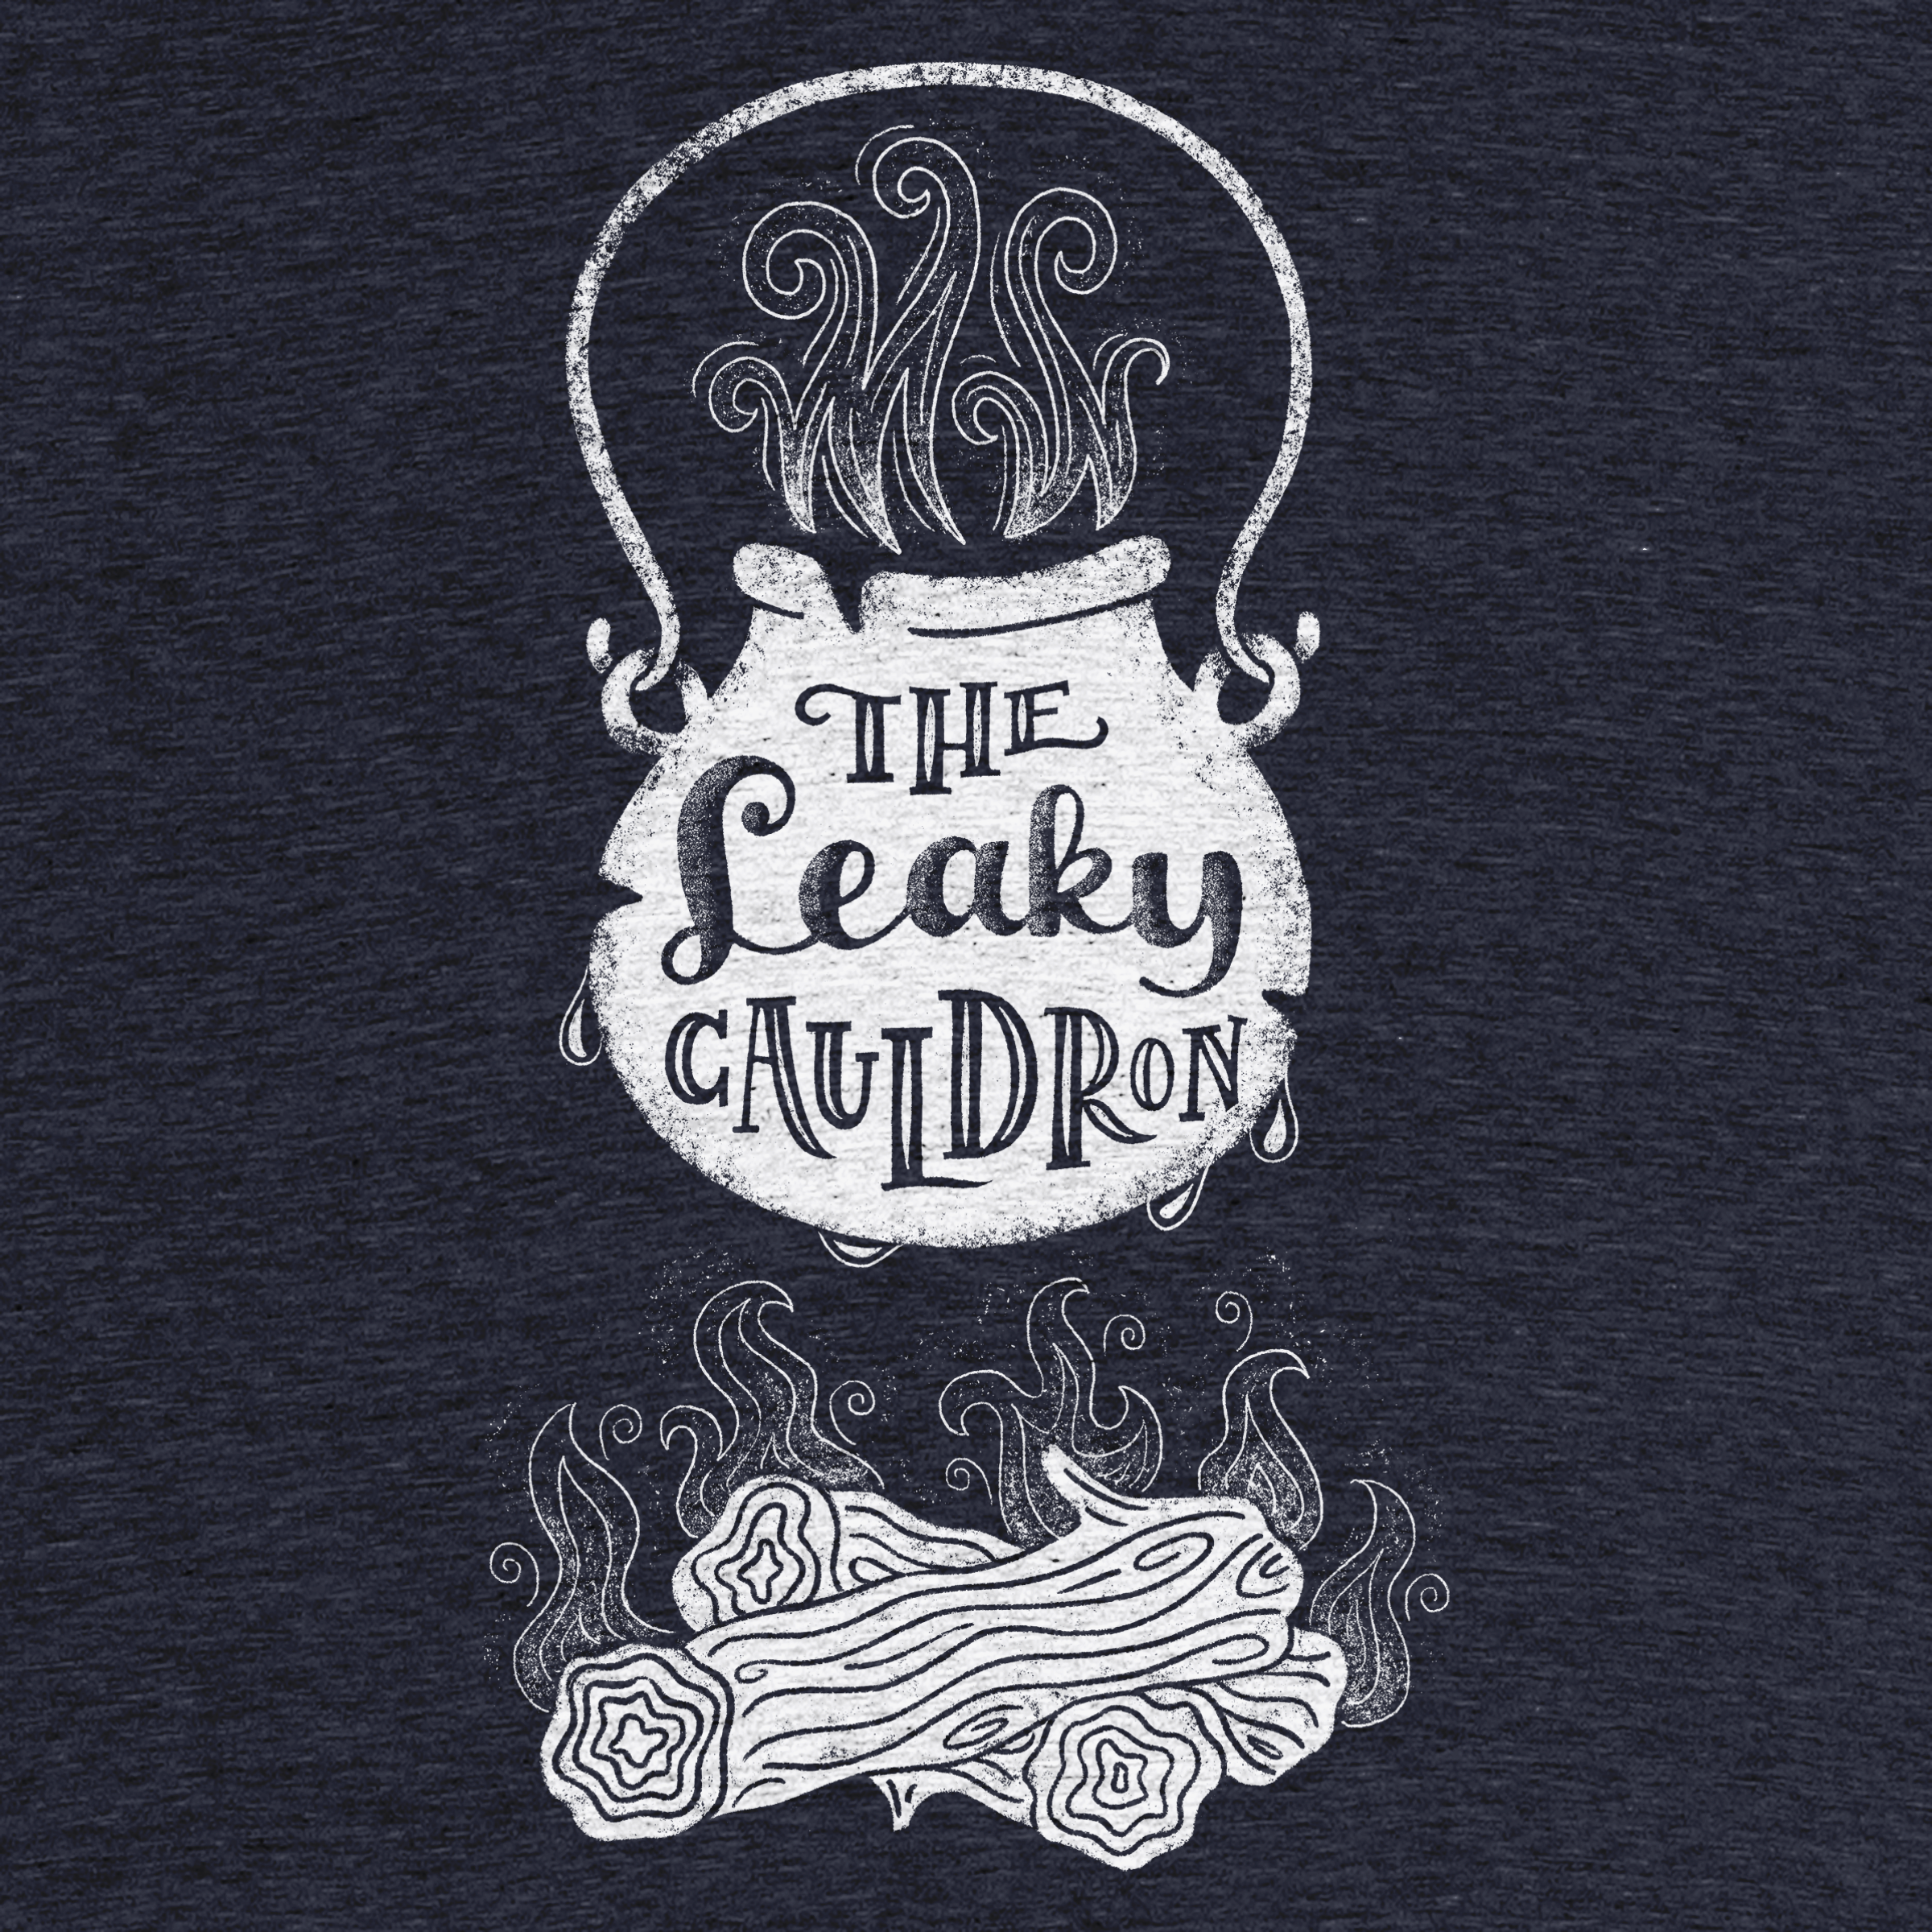 Leaky Cauldron